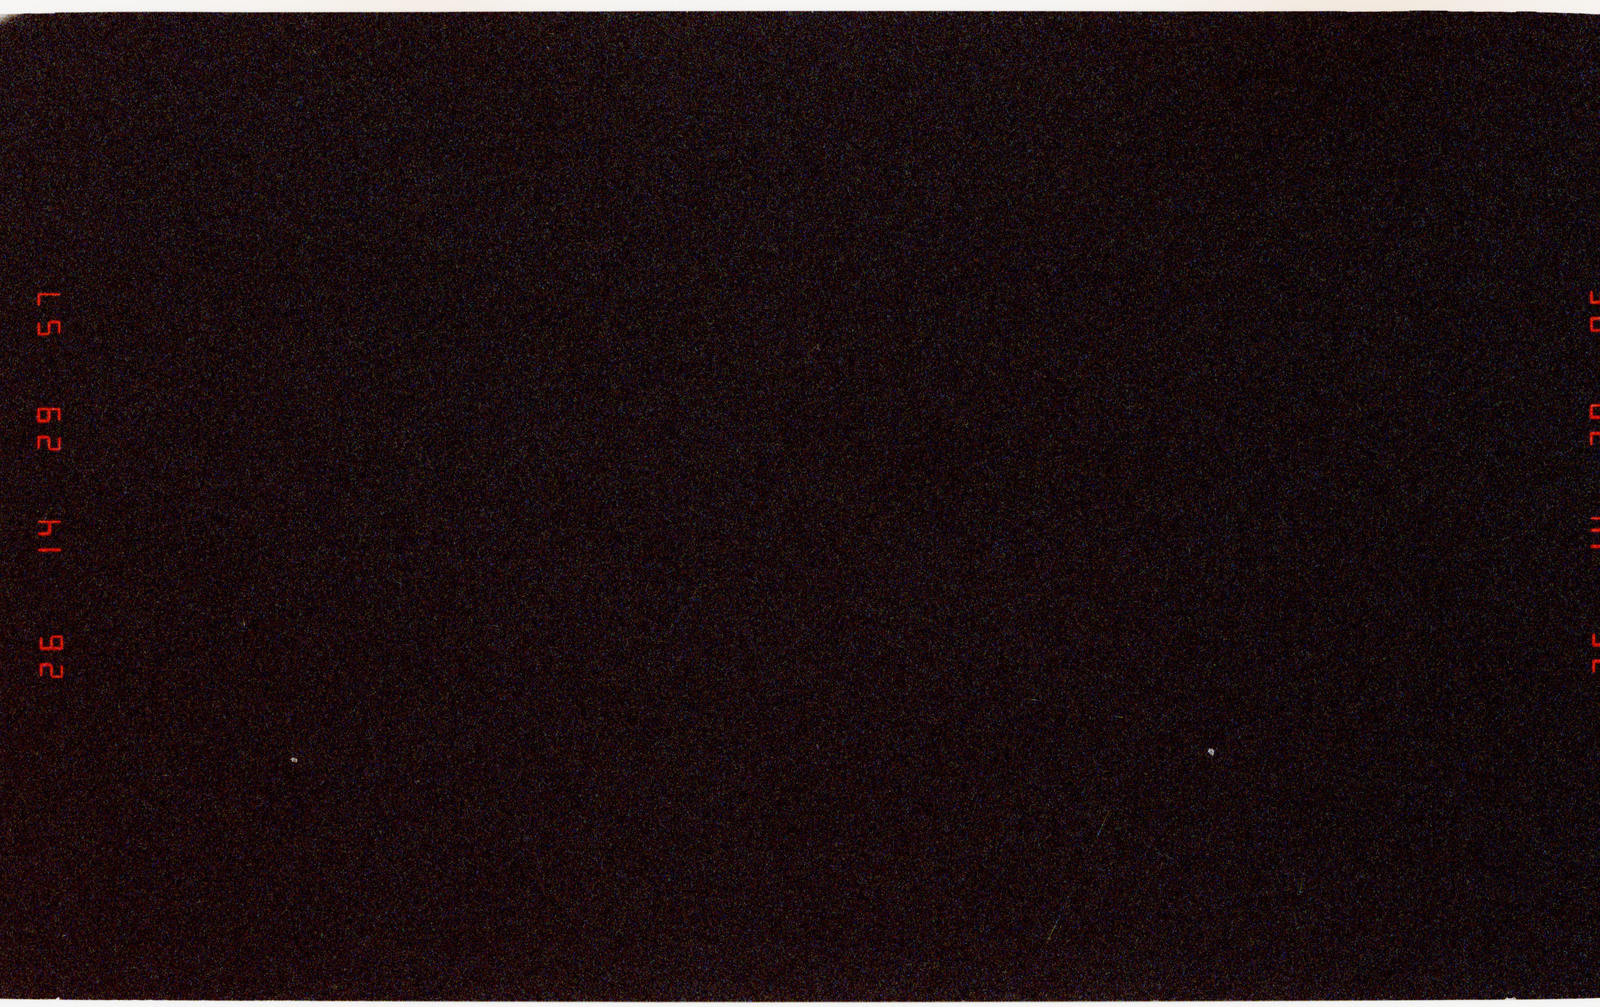 S45-35-027 - STS-045 - STS-45 earth observations